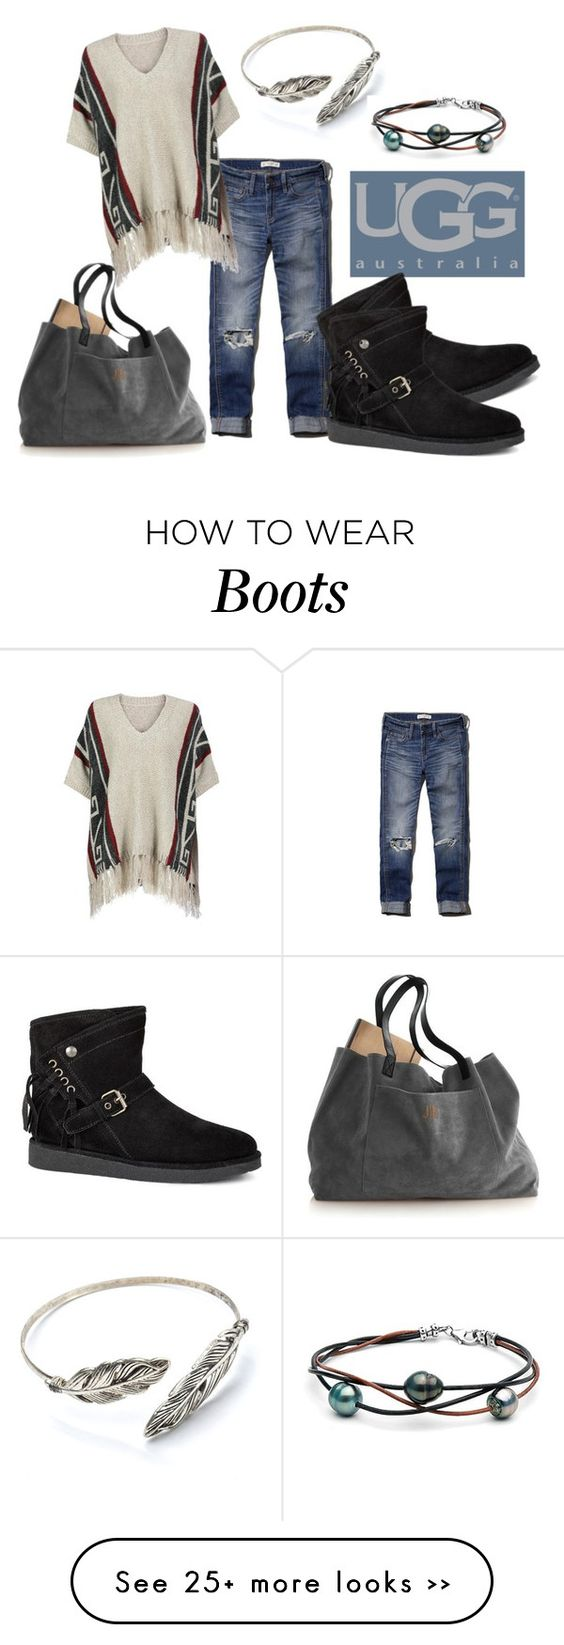 """Boot Remix with UGG : Contest Entry"" by reenie67 on Polyvore featuring Abercrombie & Fitch and UGG Australia"